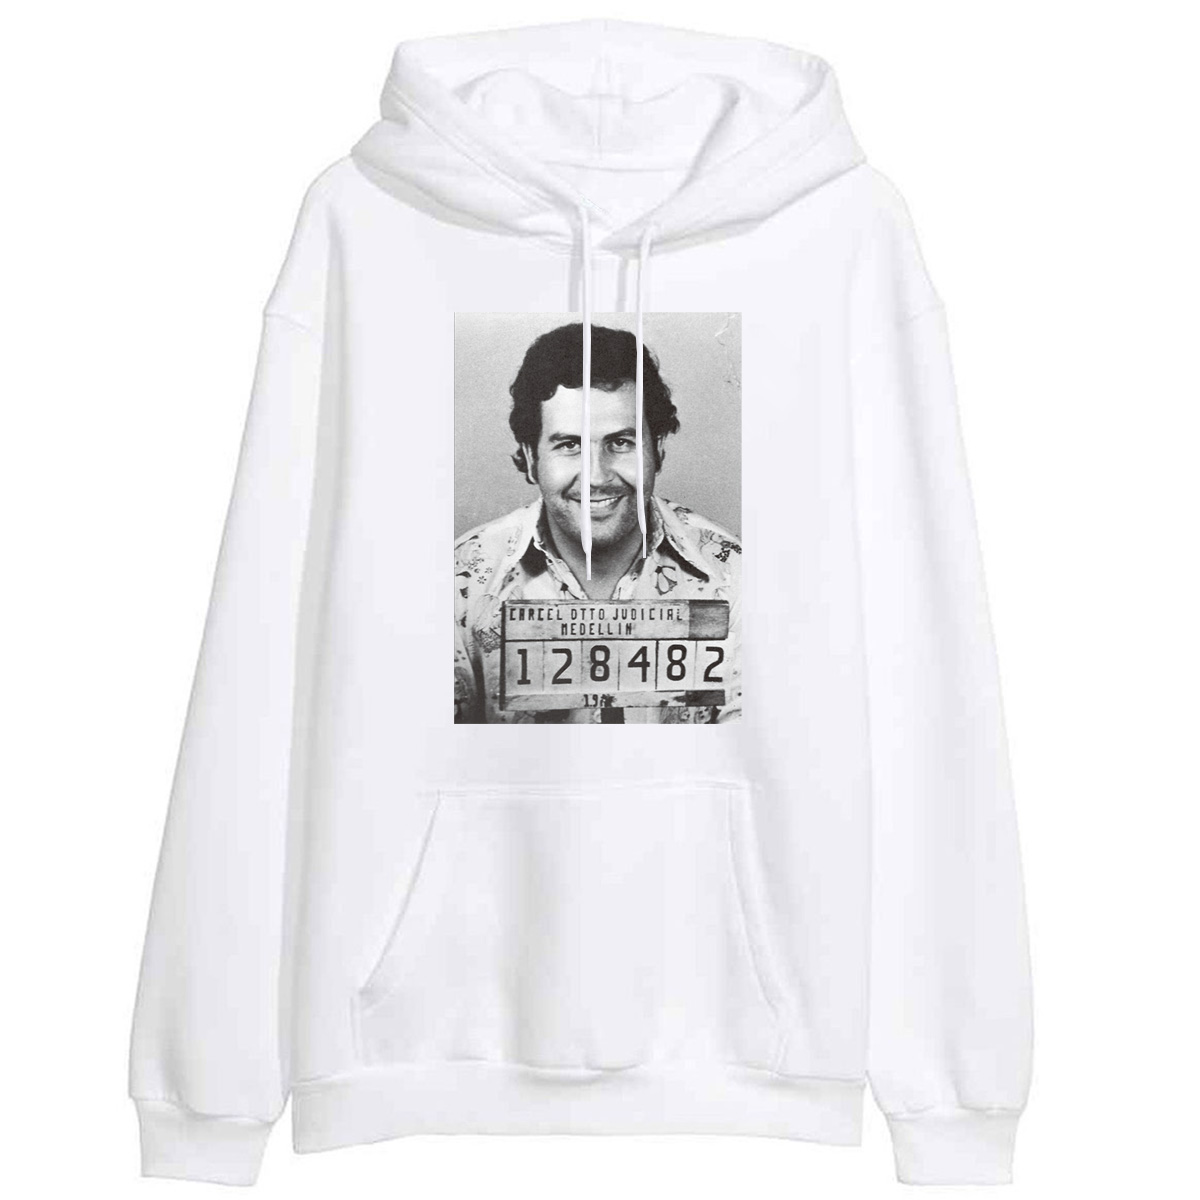 Black White Outwear Sweatshirts Women Fleece Pullover Pablo Escobar Drug Lord Cartel Money Print Lady Fashion Hipster Sportswear